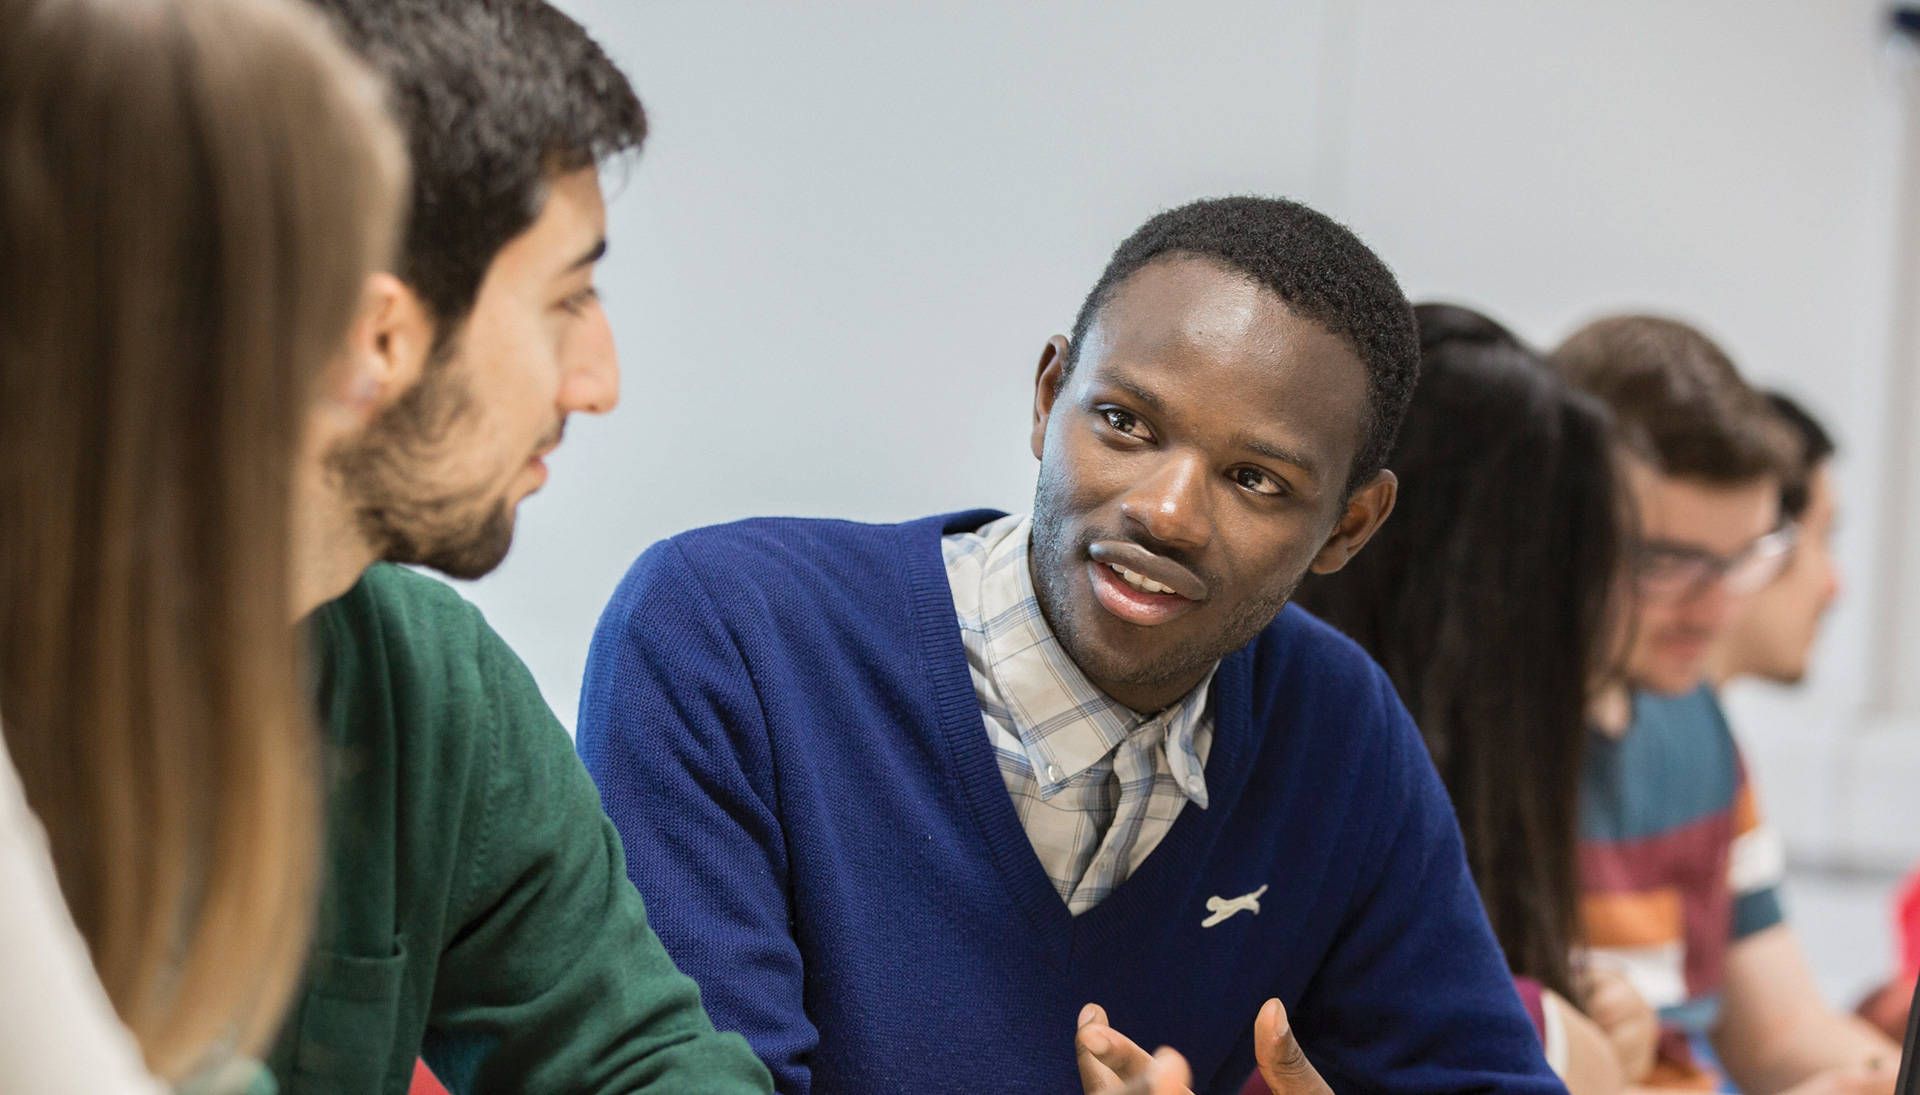 A student having a discussion with a colleague